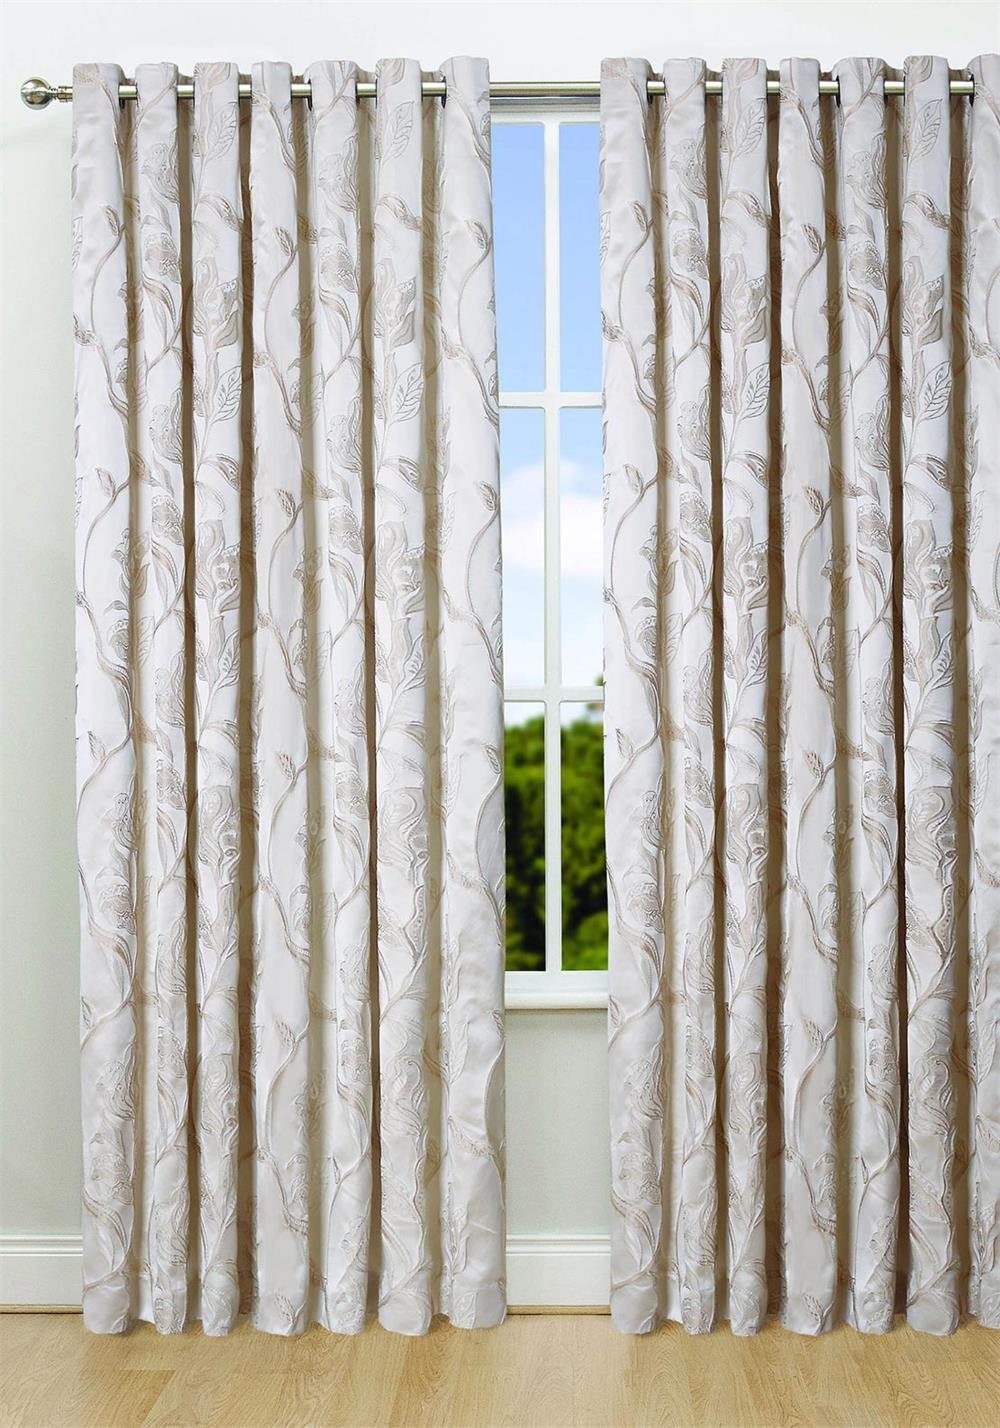 Scatterbox Chelsea Ready Made Eyelet Top Curtains, Ivory